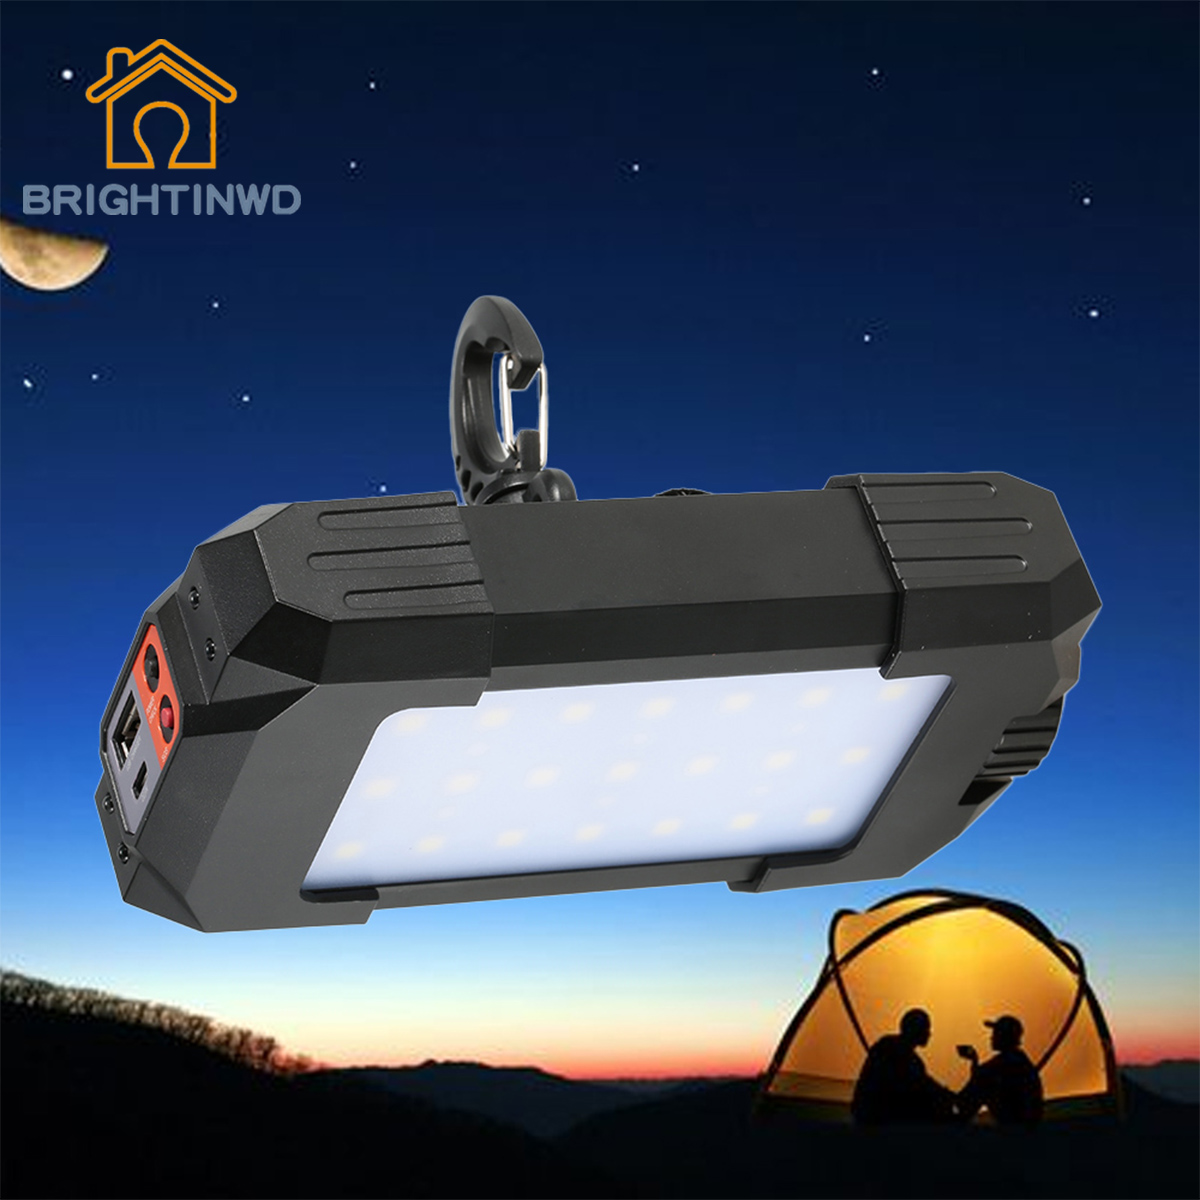 10W 27 LEDS Portable Lantern Camping light with USB Camping Travel Mobile Power Bank 500LM Tent Light